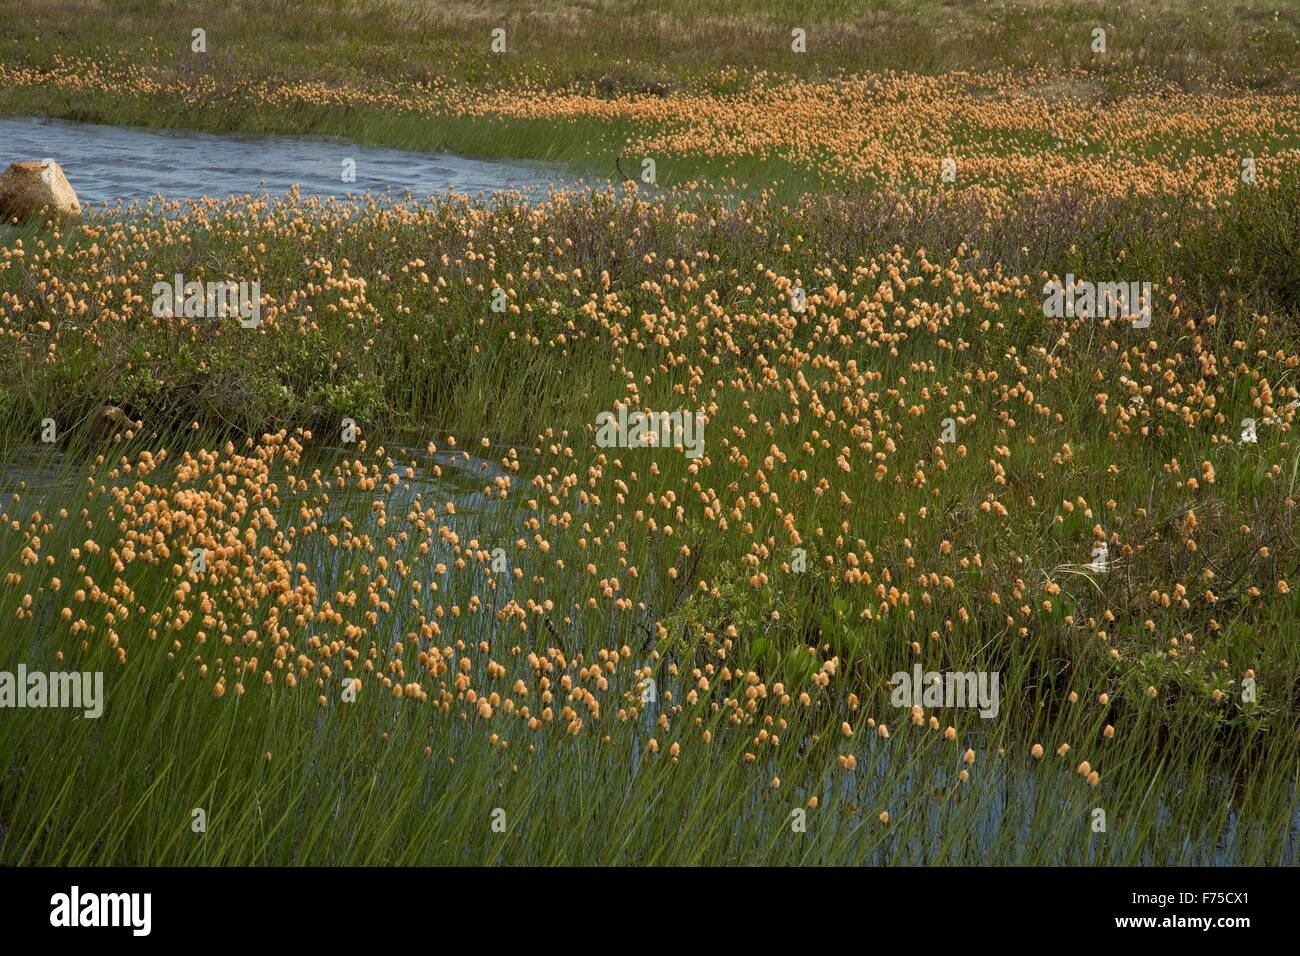 Chamisso's cottongrass or russet cottongrass, in fruit, around bog pond, Newfoundland. - Stock Image